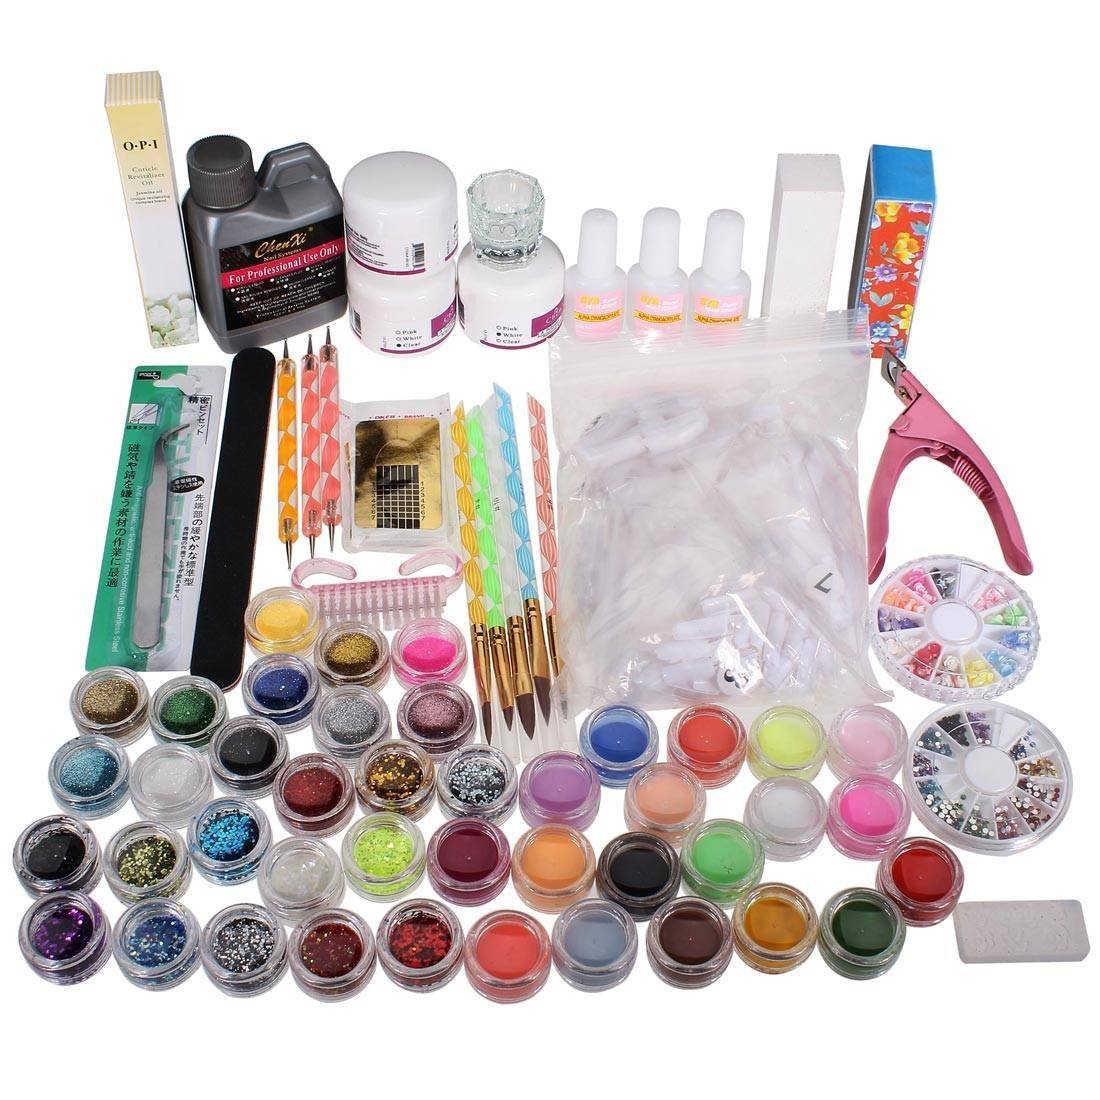 Valentine's Day Birthday Gift Nail art kits Nail Care Nail Design Nail Acrylic Powder Brush Glitter Tip Tools одеяло лавандового цвета с принтом brums ут 00011835